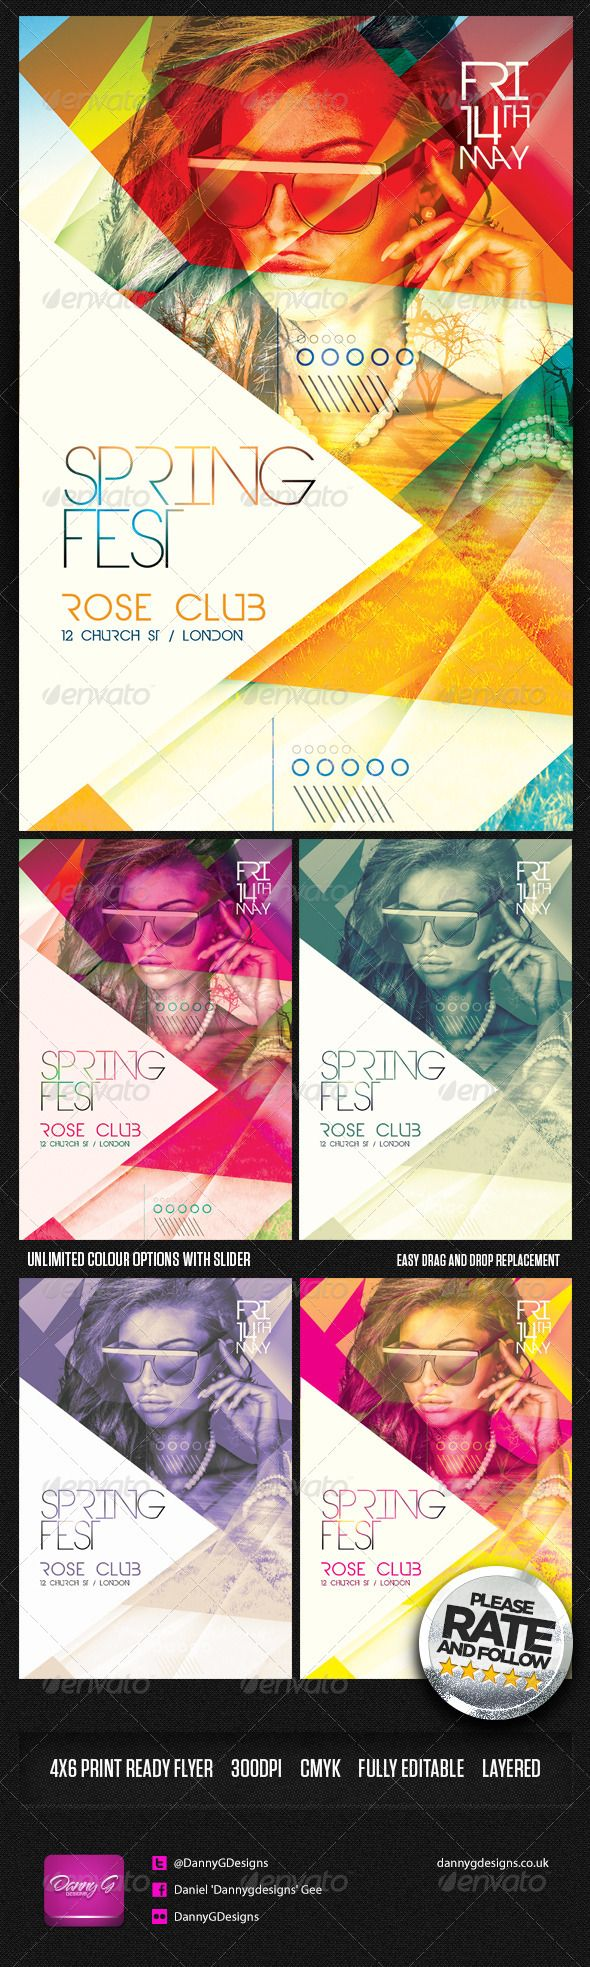 Spring Fest Flyer Template Psd  Photoshop Psd Spring Flyer Psd